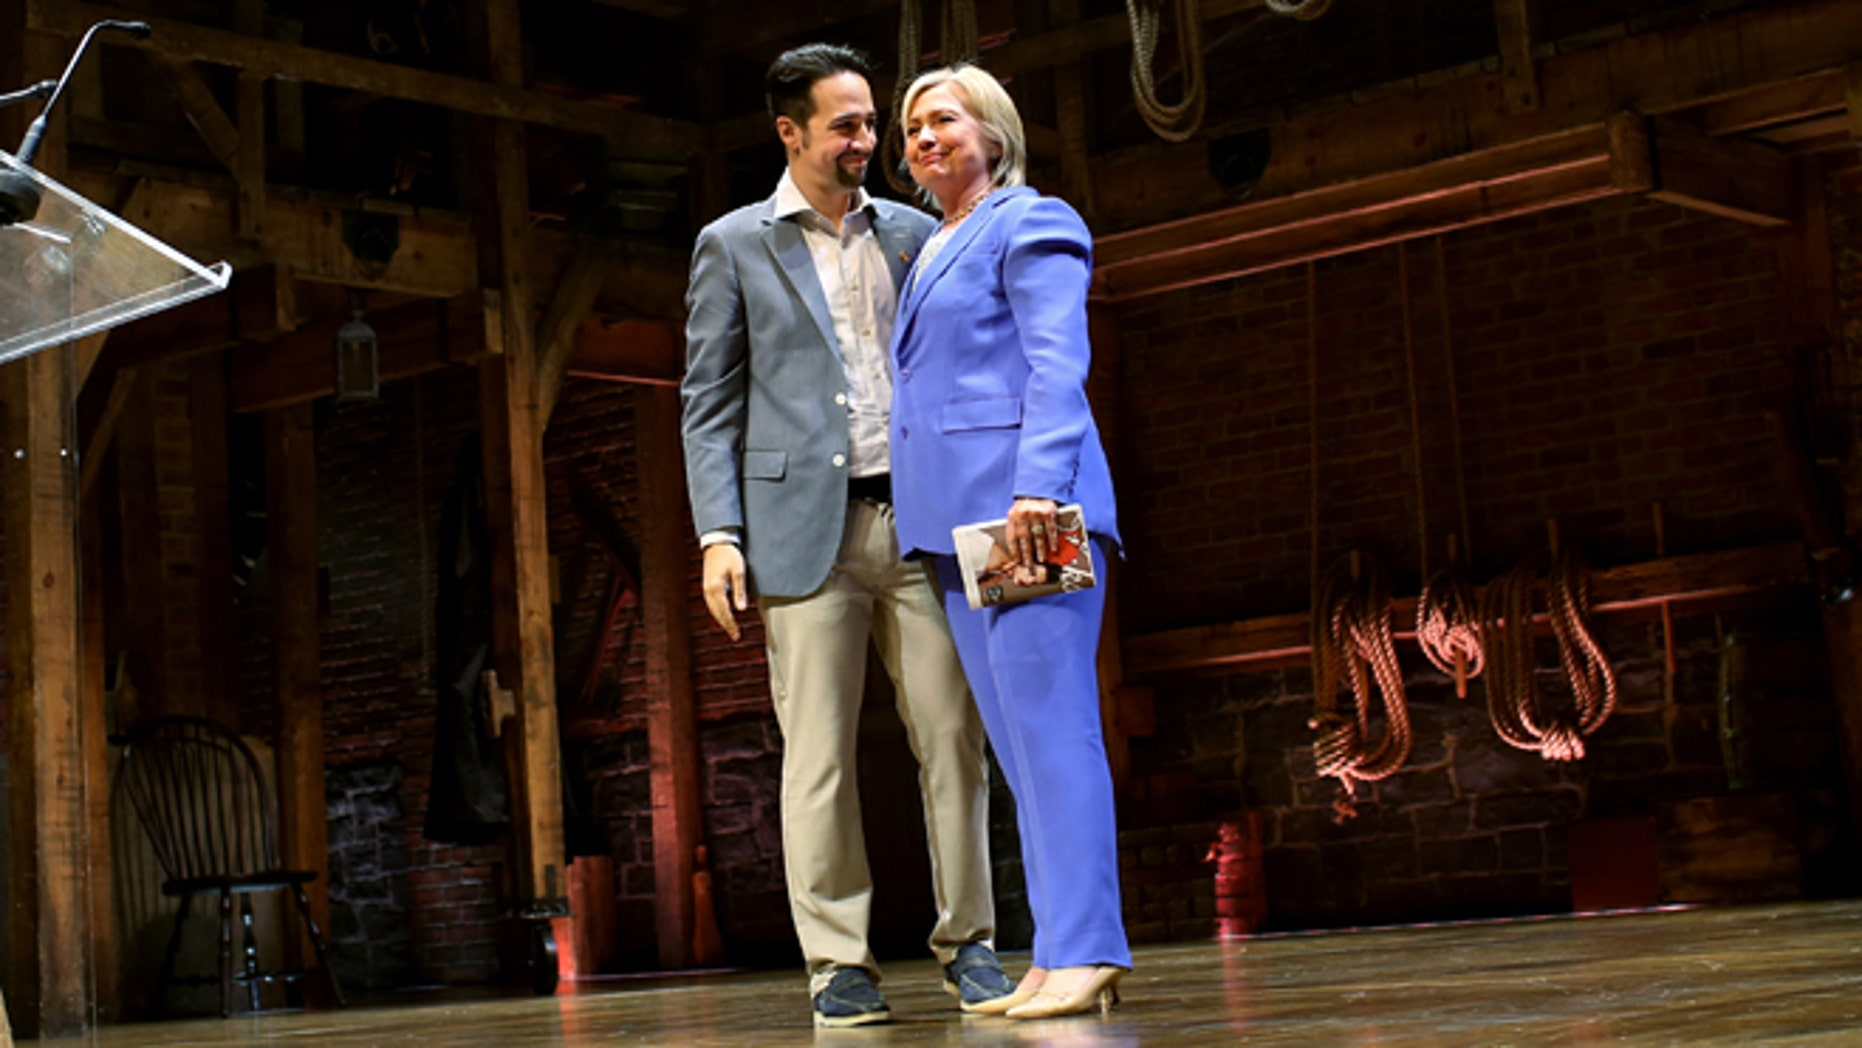 """NEW YORK - JULY 12: U.S. Democratic presidential candidate Hillary Clinton and Lin-Manuel Miranda, creator of the Broadway musical """"Hamilton"""" stand onstage after a special performance of the Tony-winning musical  at the Richard Rodgers Theatre on July 12, 2016 in New York City. Clinton hosted a fundraiser at the special performance, with supporters paying from $2,700 to up to $100,000 for the chance to attend.  (Photo by Yana Paskova/Getty Images)"""